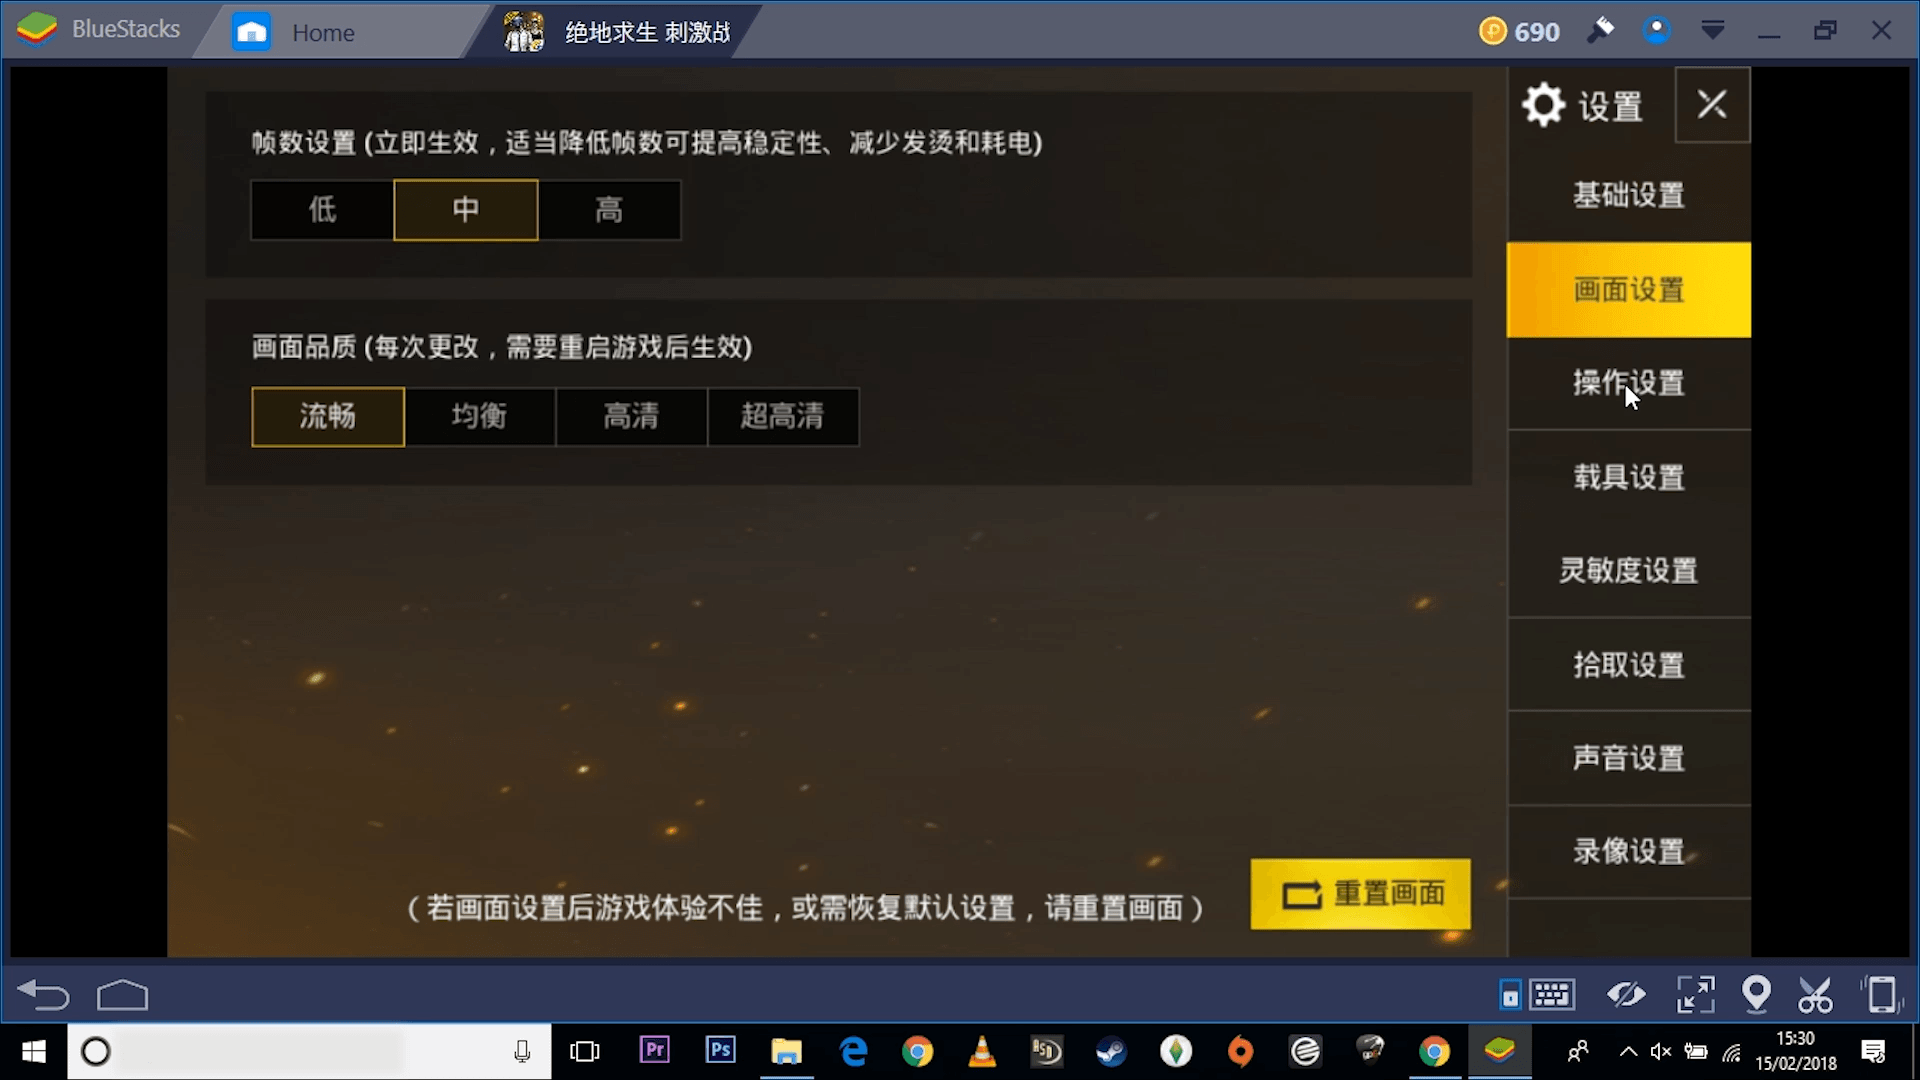 Bluestacks PUBG Settings 2